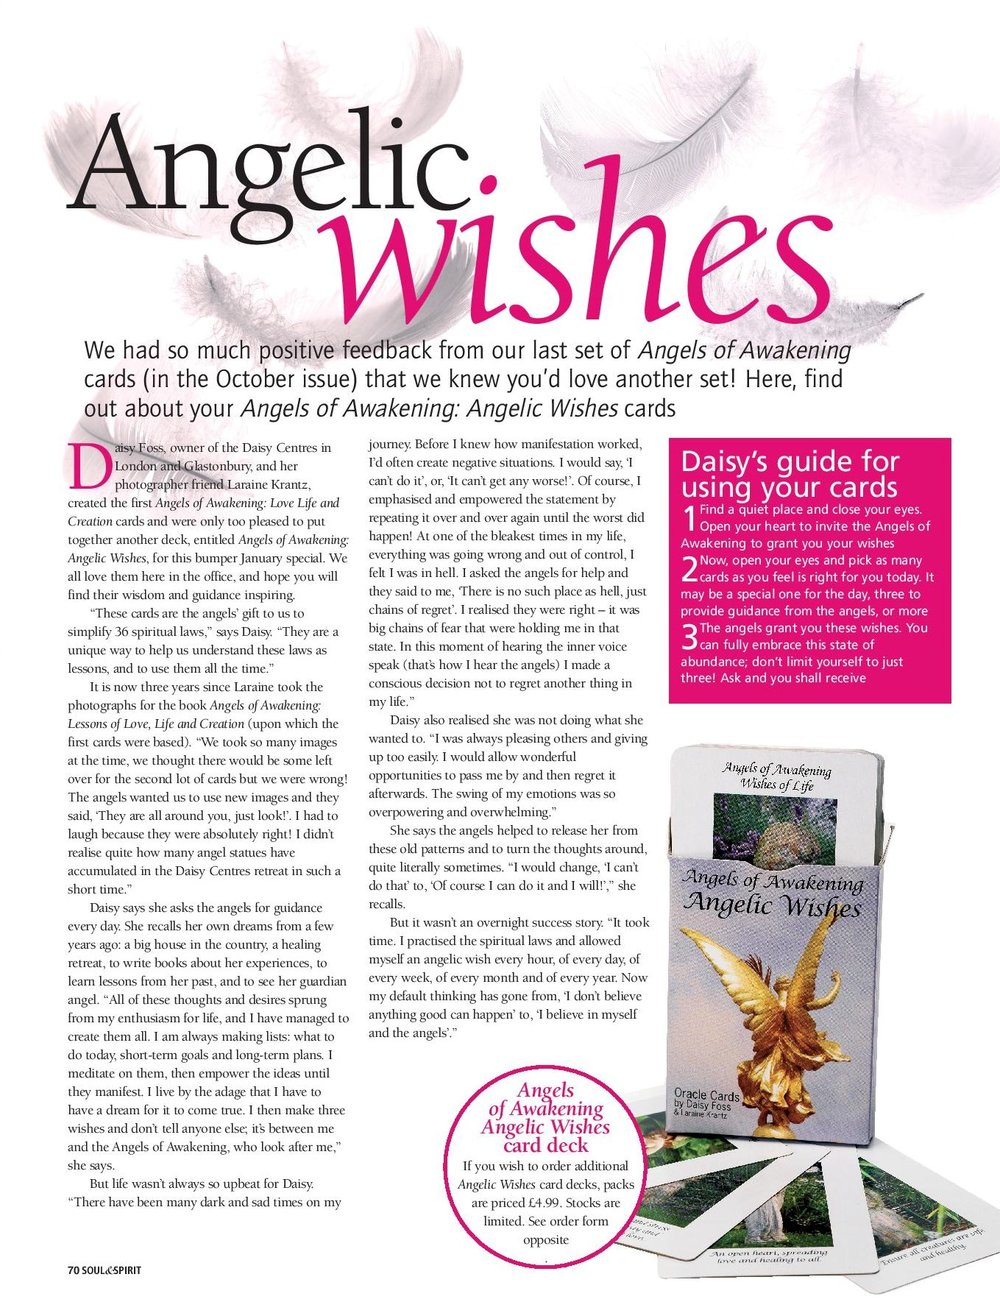 AngelicWishes-page-001.jpg